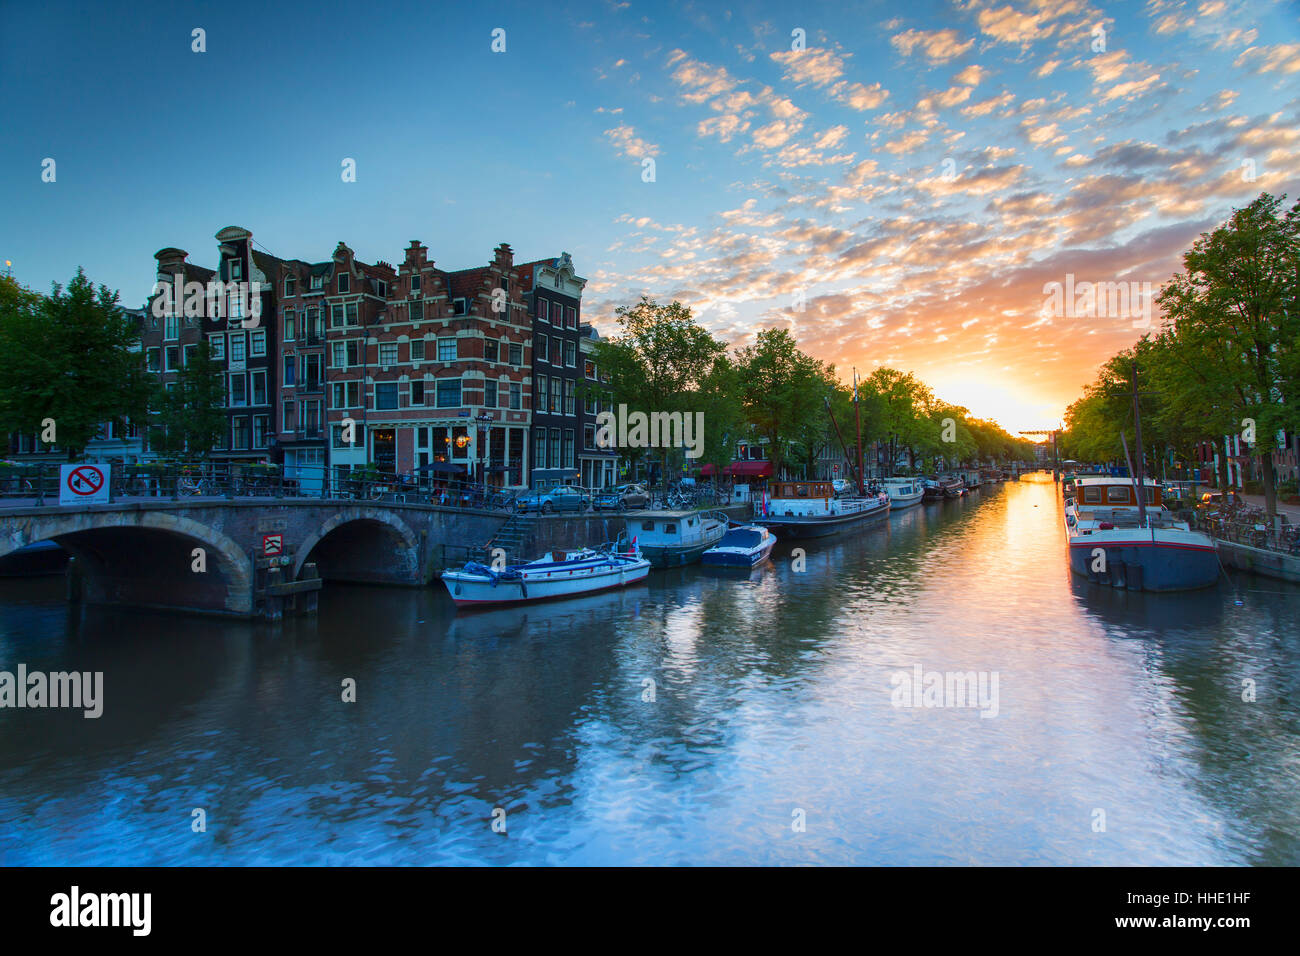 Prinsengracht and Brouwersgracht canals at sunset, Amsterdam, Netherlands Stock Photo